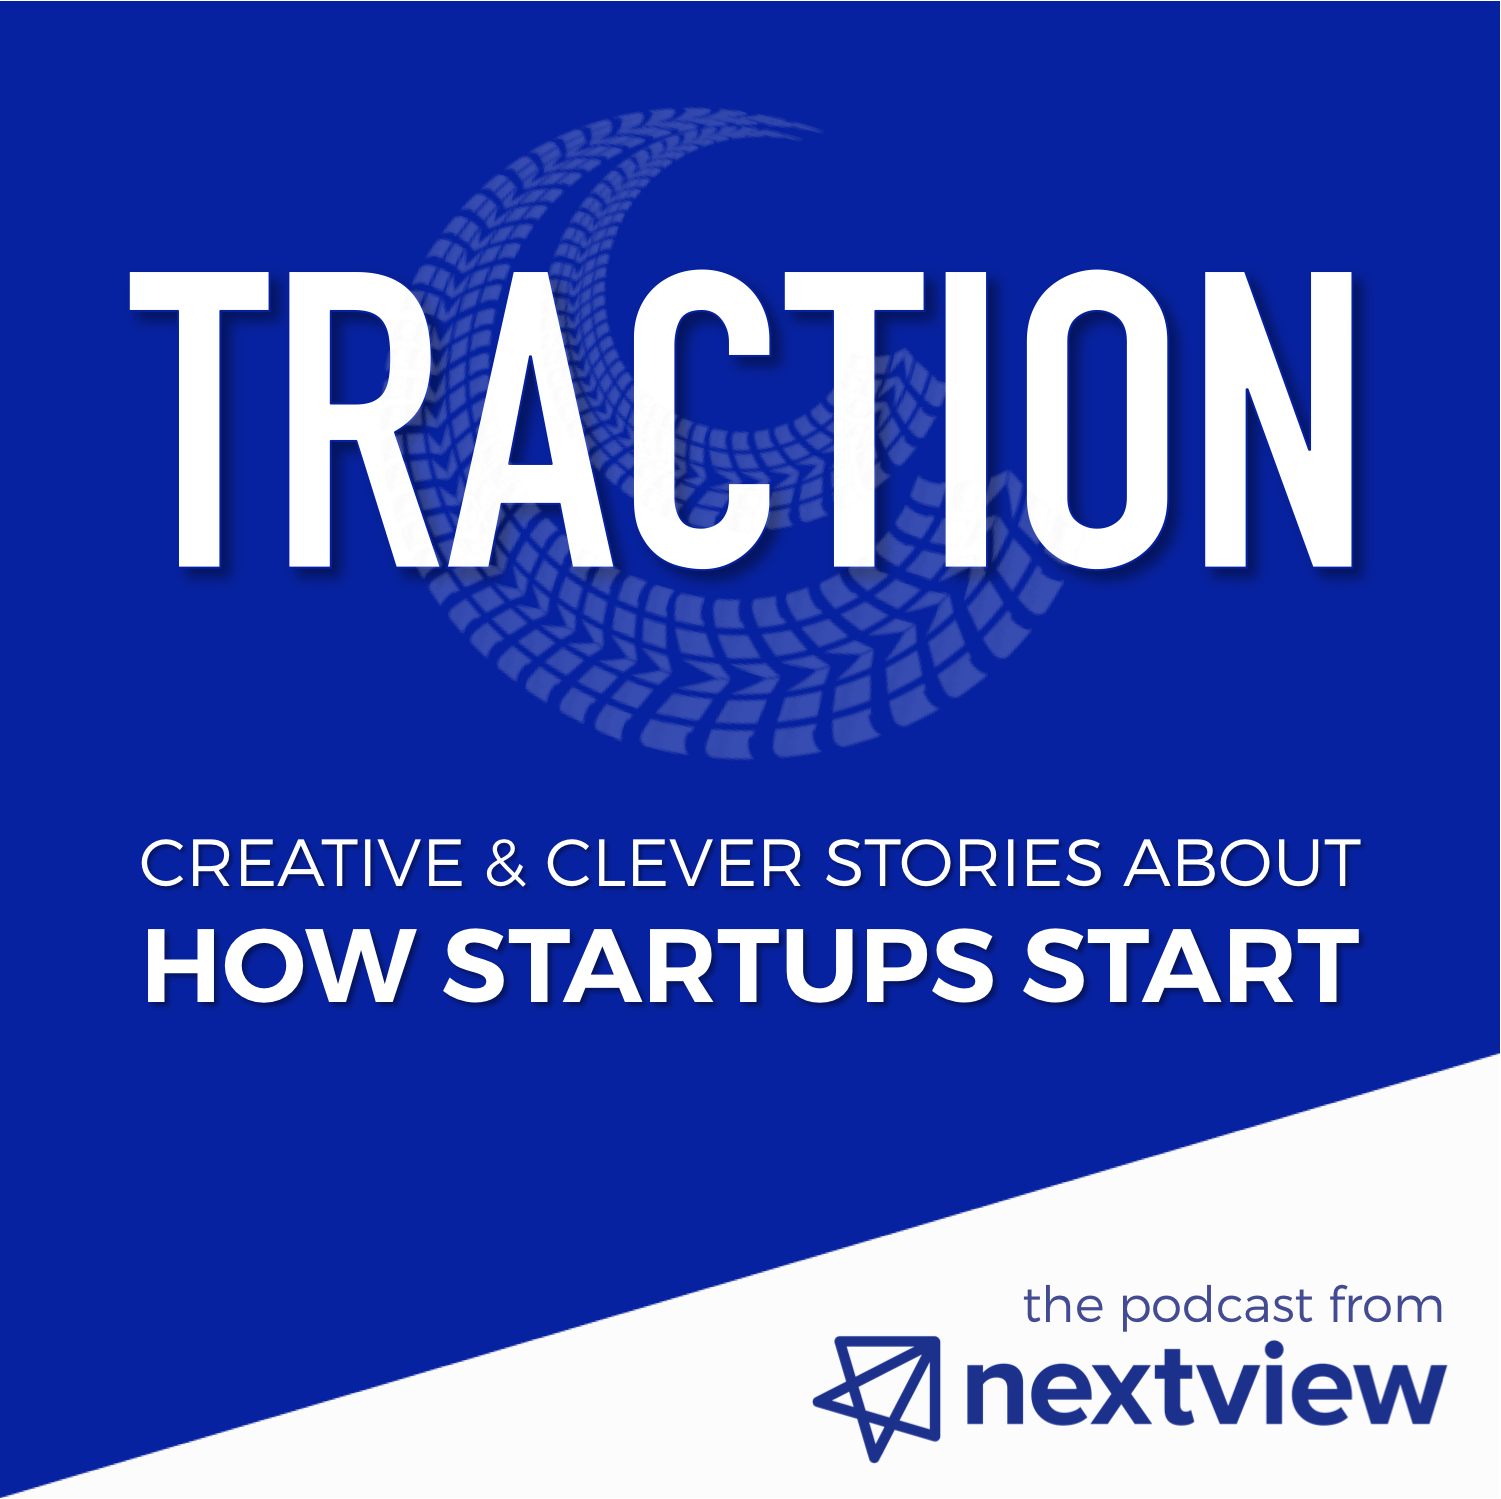 Traction_Podcast_Cover_Art_-_NextView.png